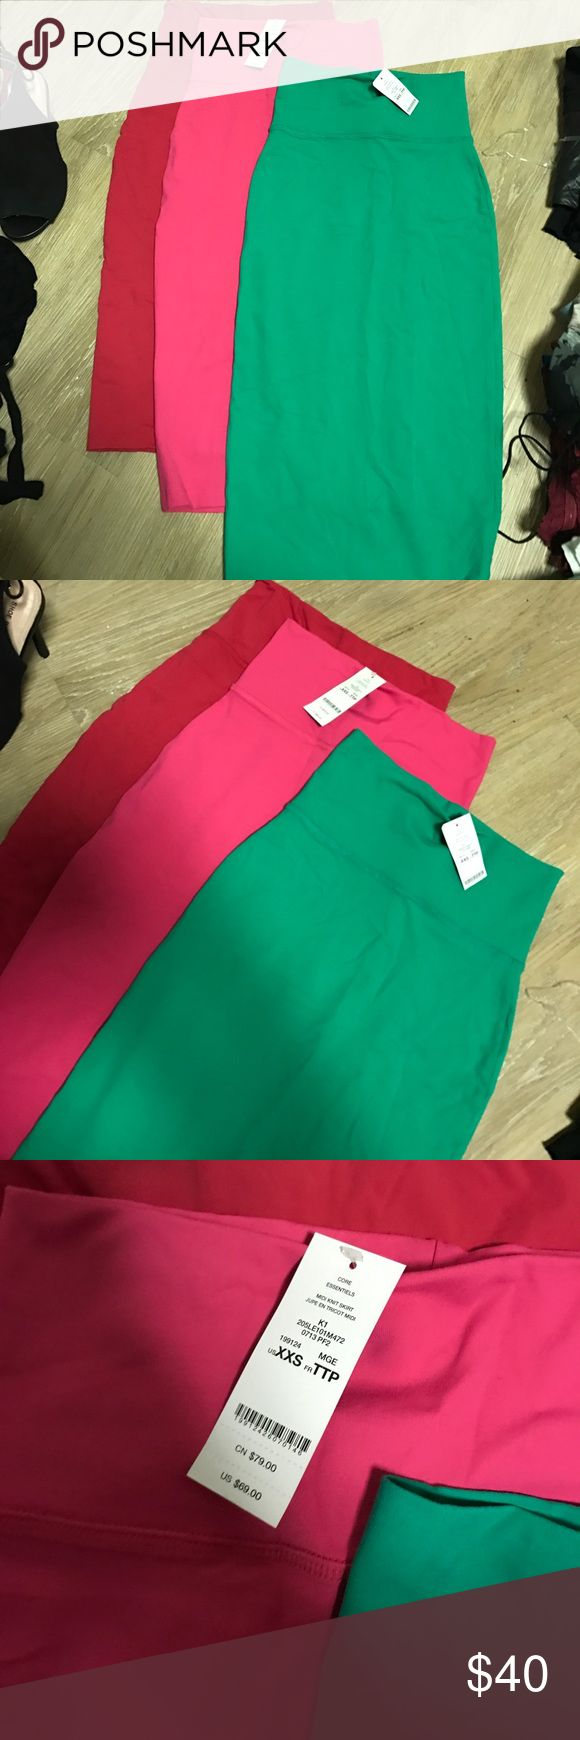 3 for 1 !!! High waisted stretchy tube skirt These will hug every curve !! Such cute colors for the summer - brand new - red pink and mint bebe Skirts Midi